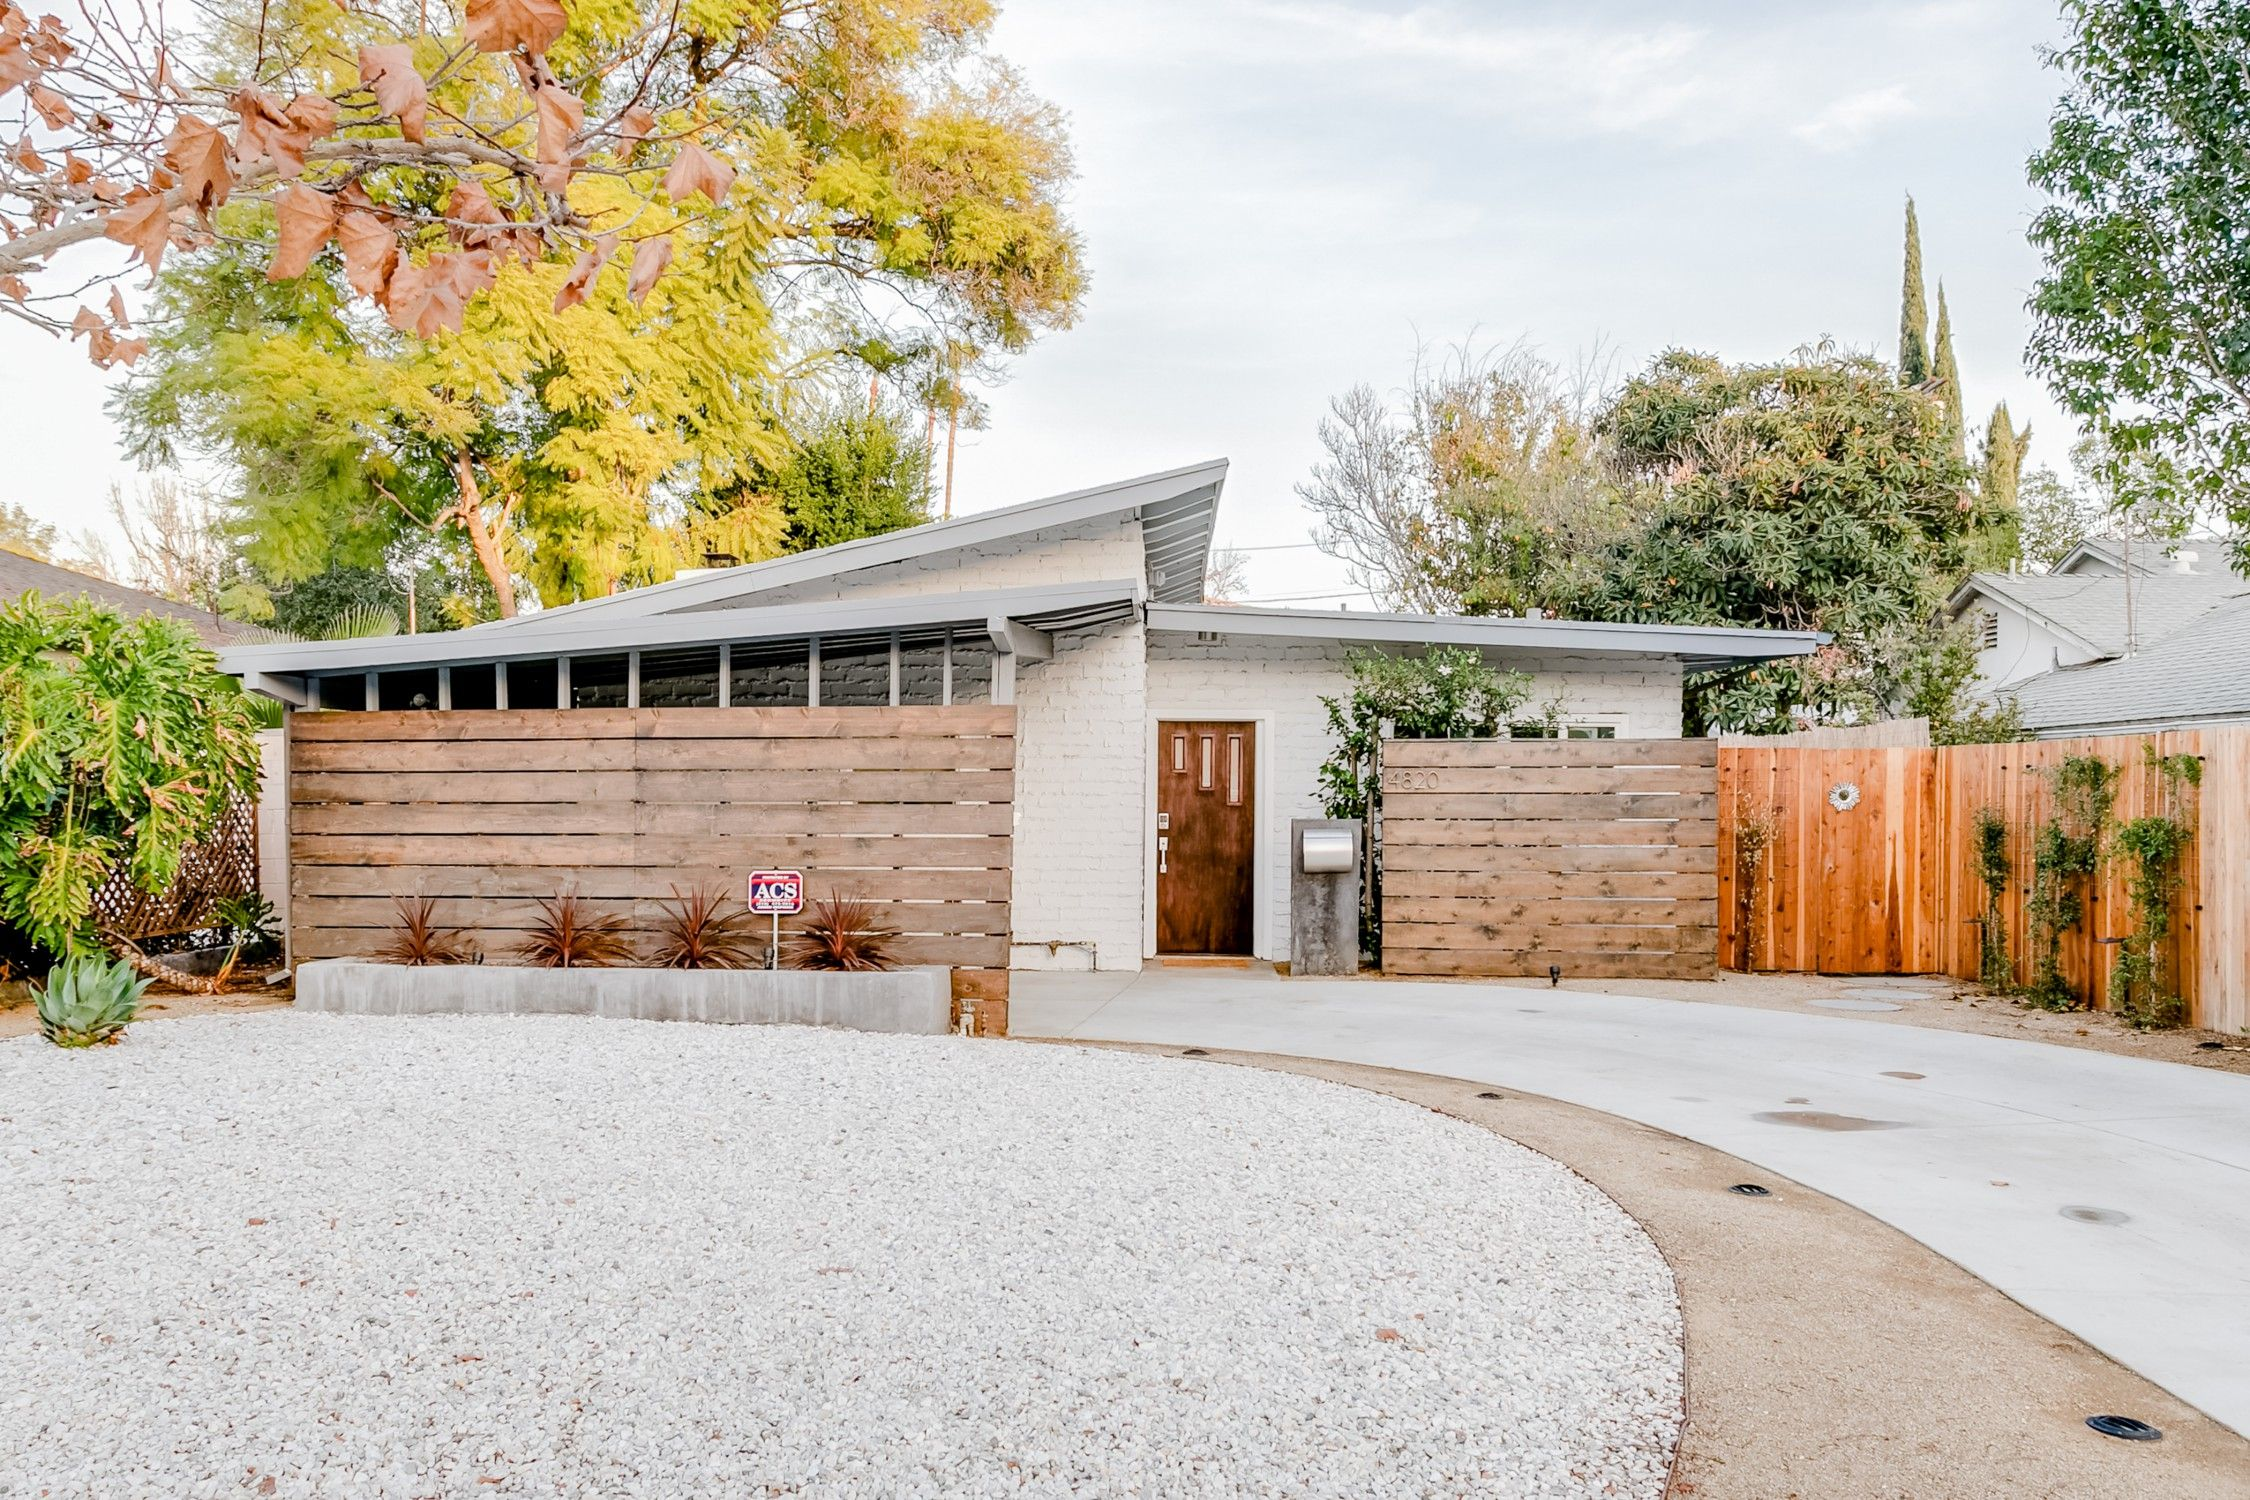 Entire Home Apt In Los Angeles United States Relax Around The Romantic Fire Pit In The Private Yard Of This Bright Pool House In Sherma California Homes Pool Houses Renting A House